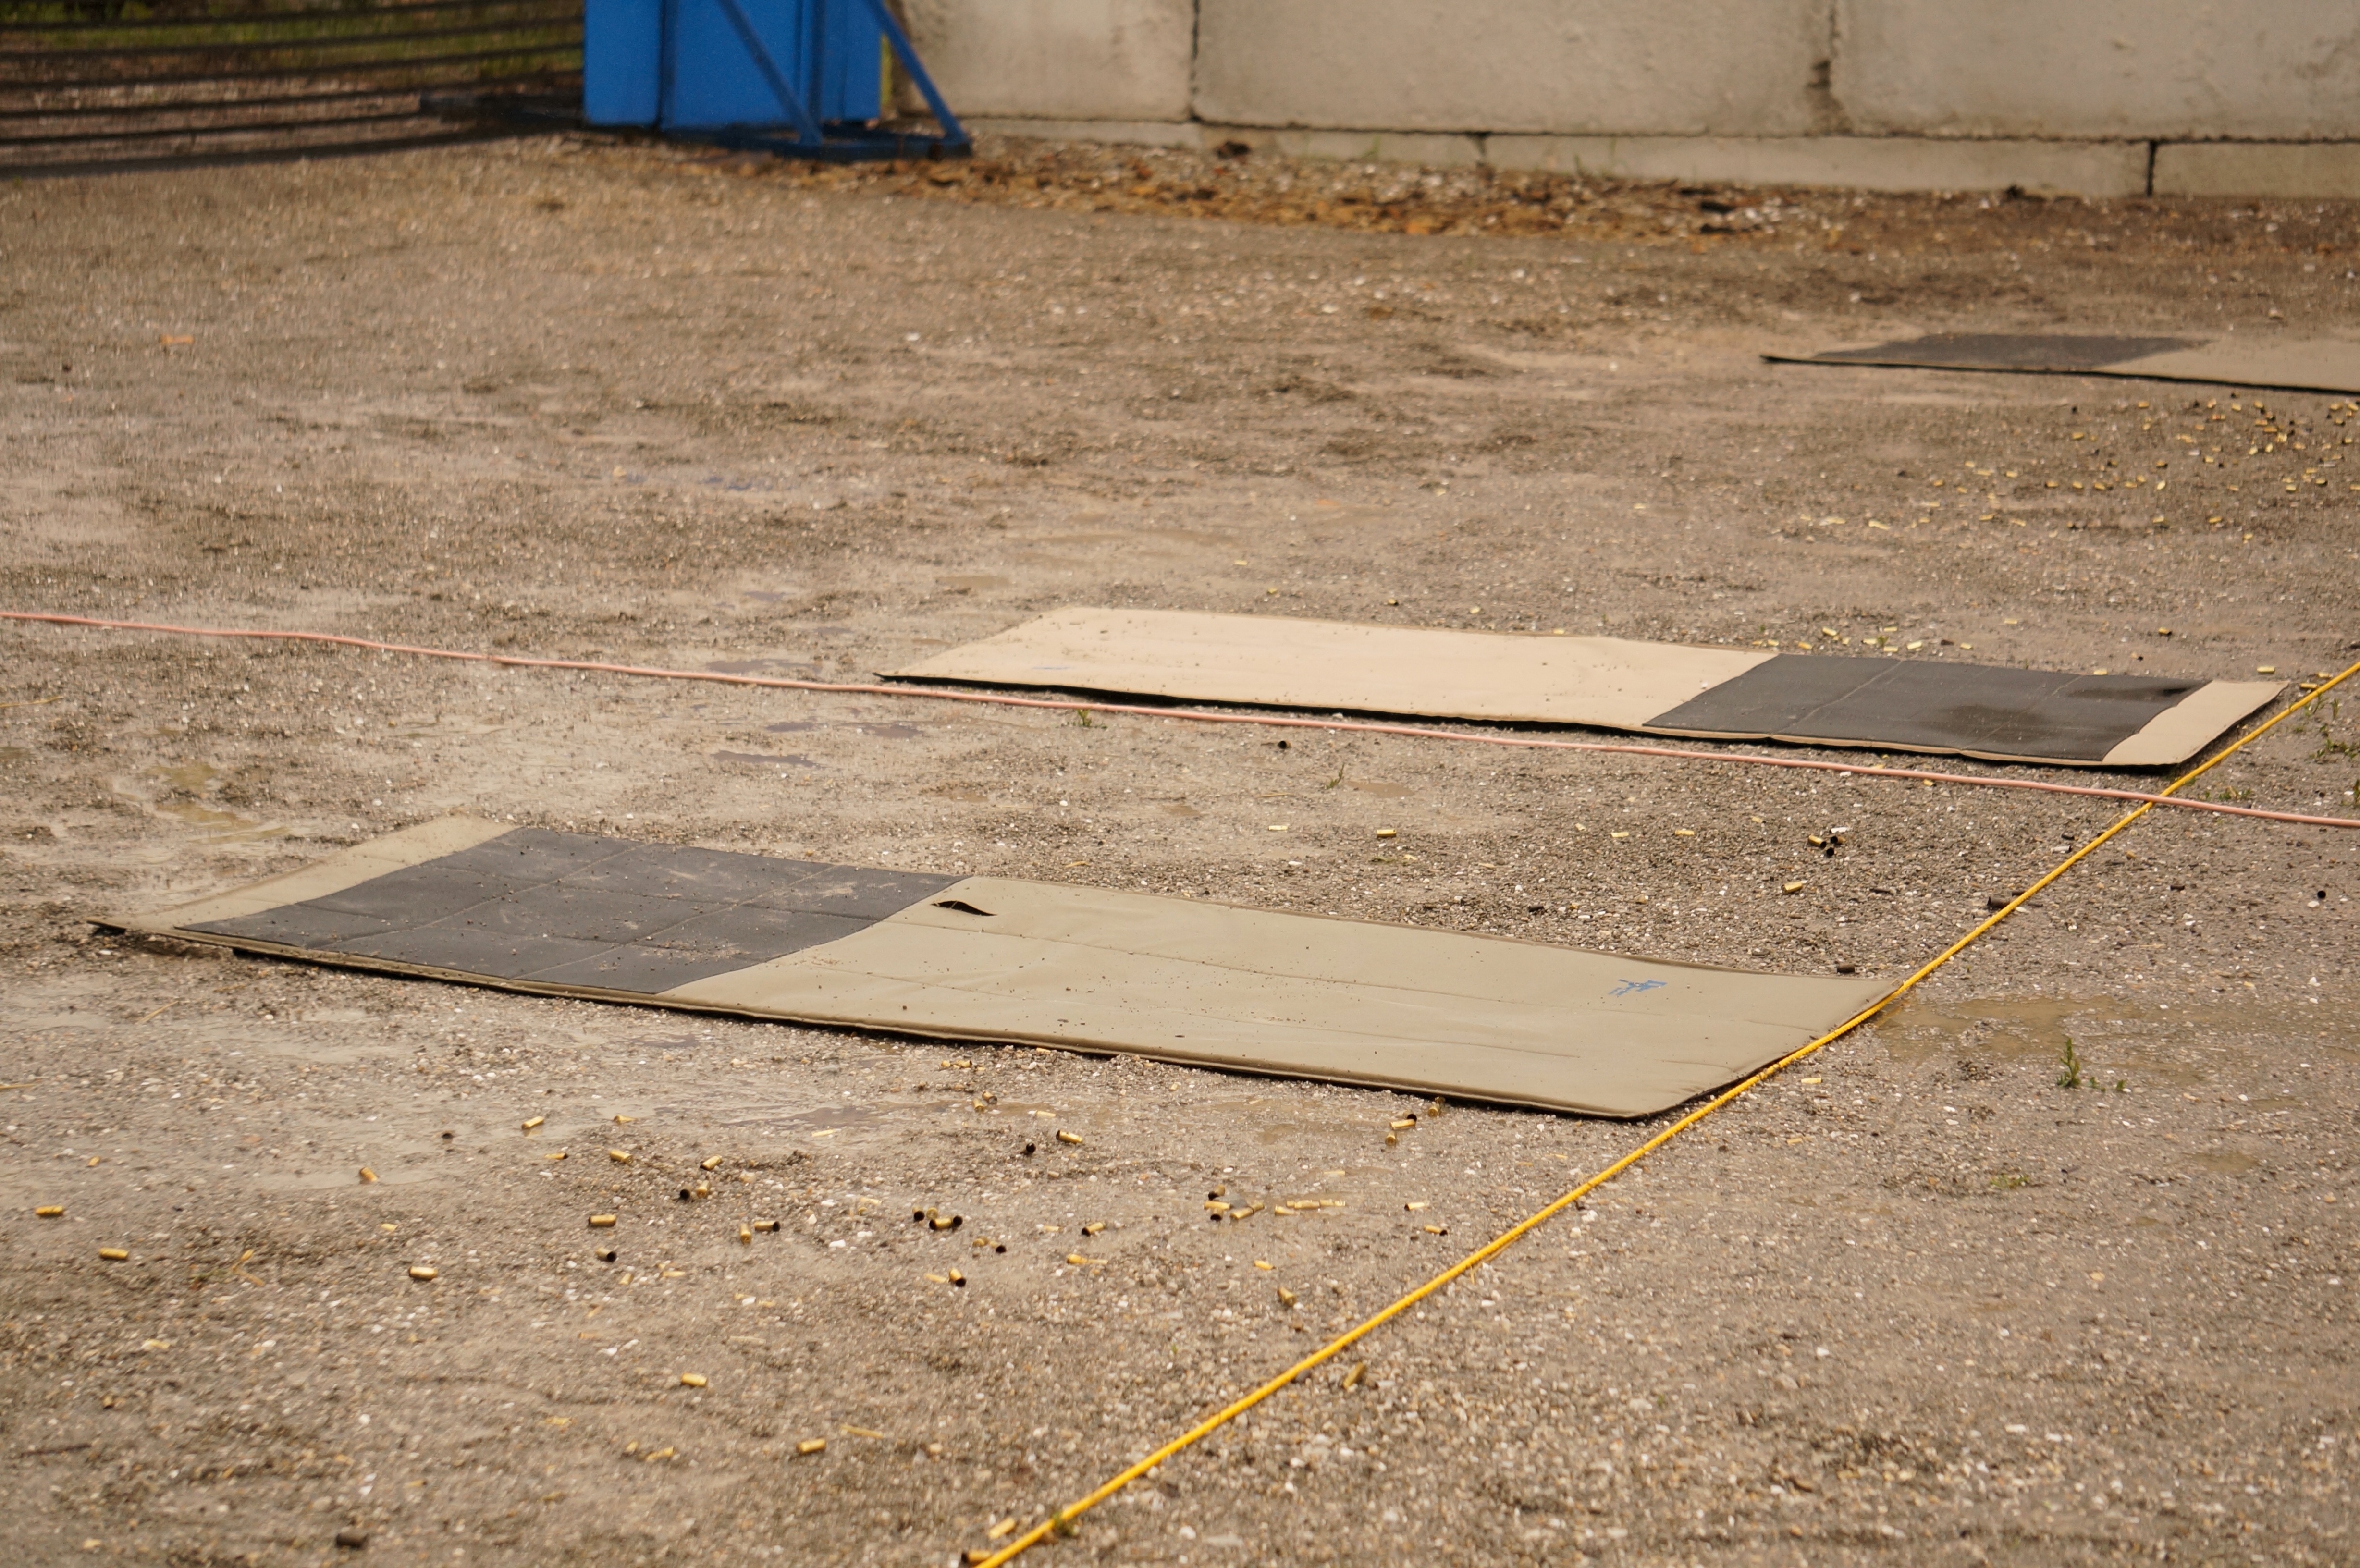 Shooting mats in puddles at the Practical.